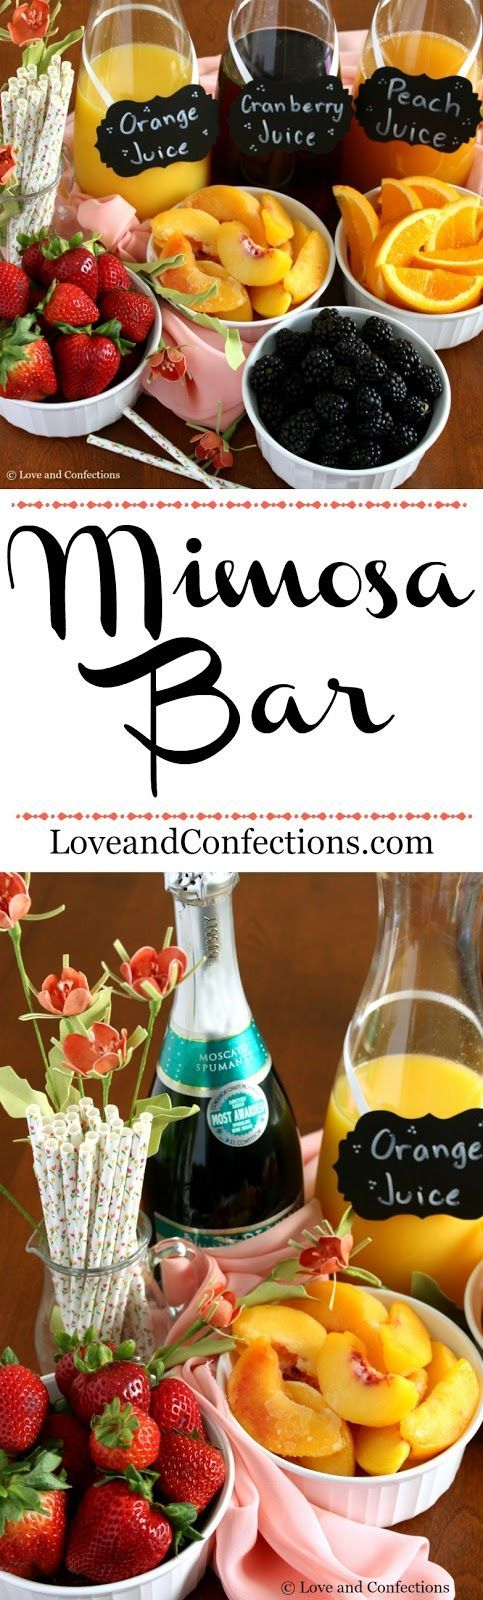 Mimosa Bar from LoveandConfections.com #BrunchWeek #sponsored